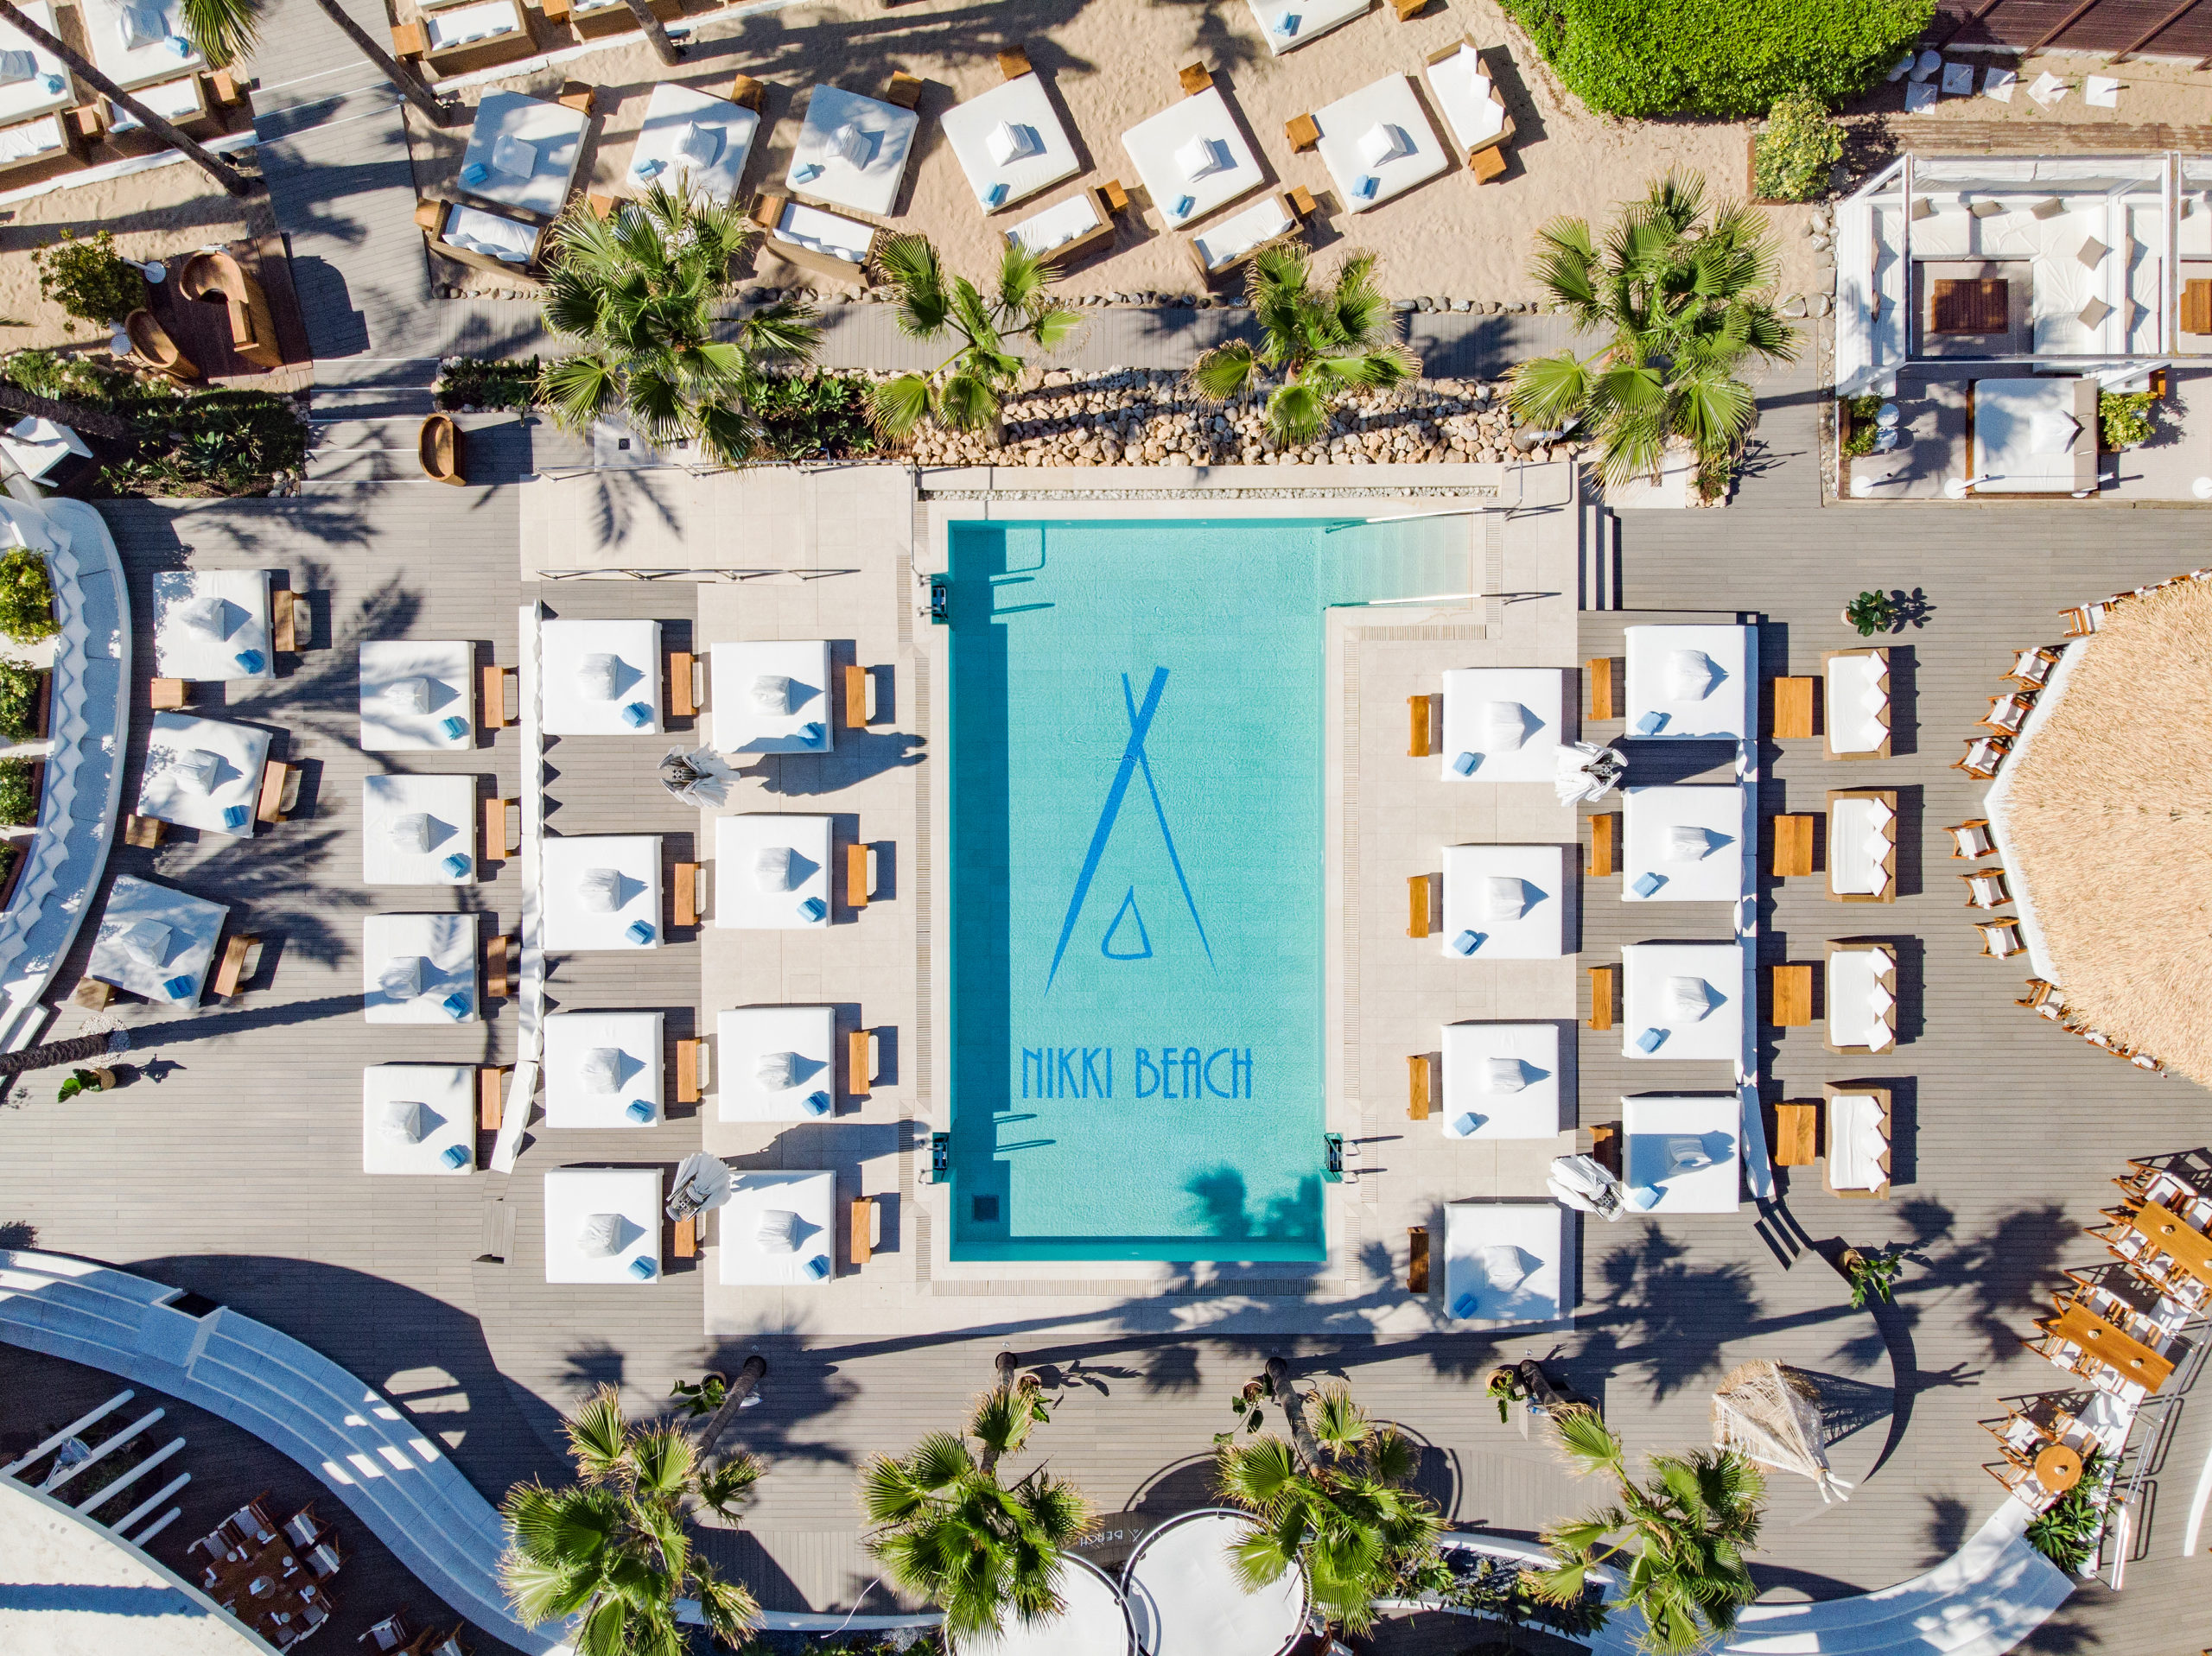 Nikki Beach Marbella Prices 2020